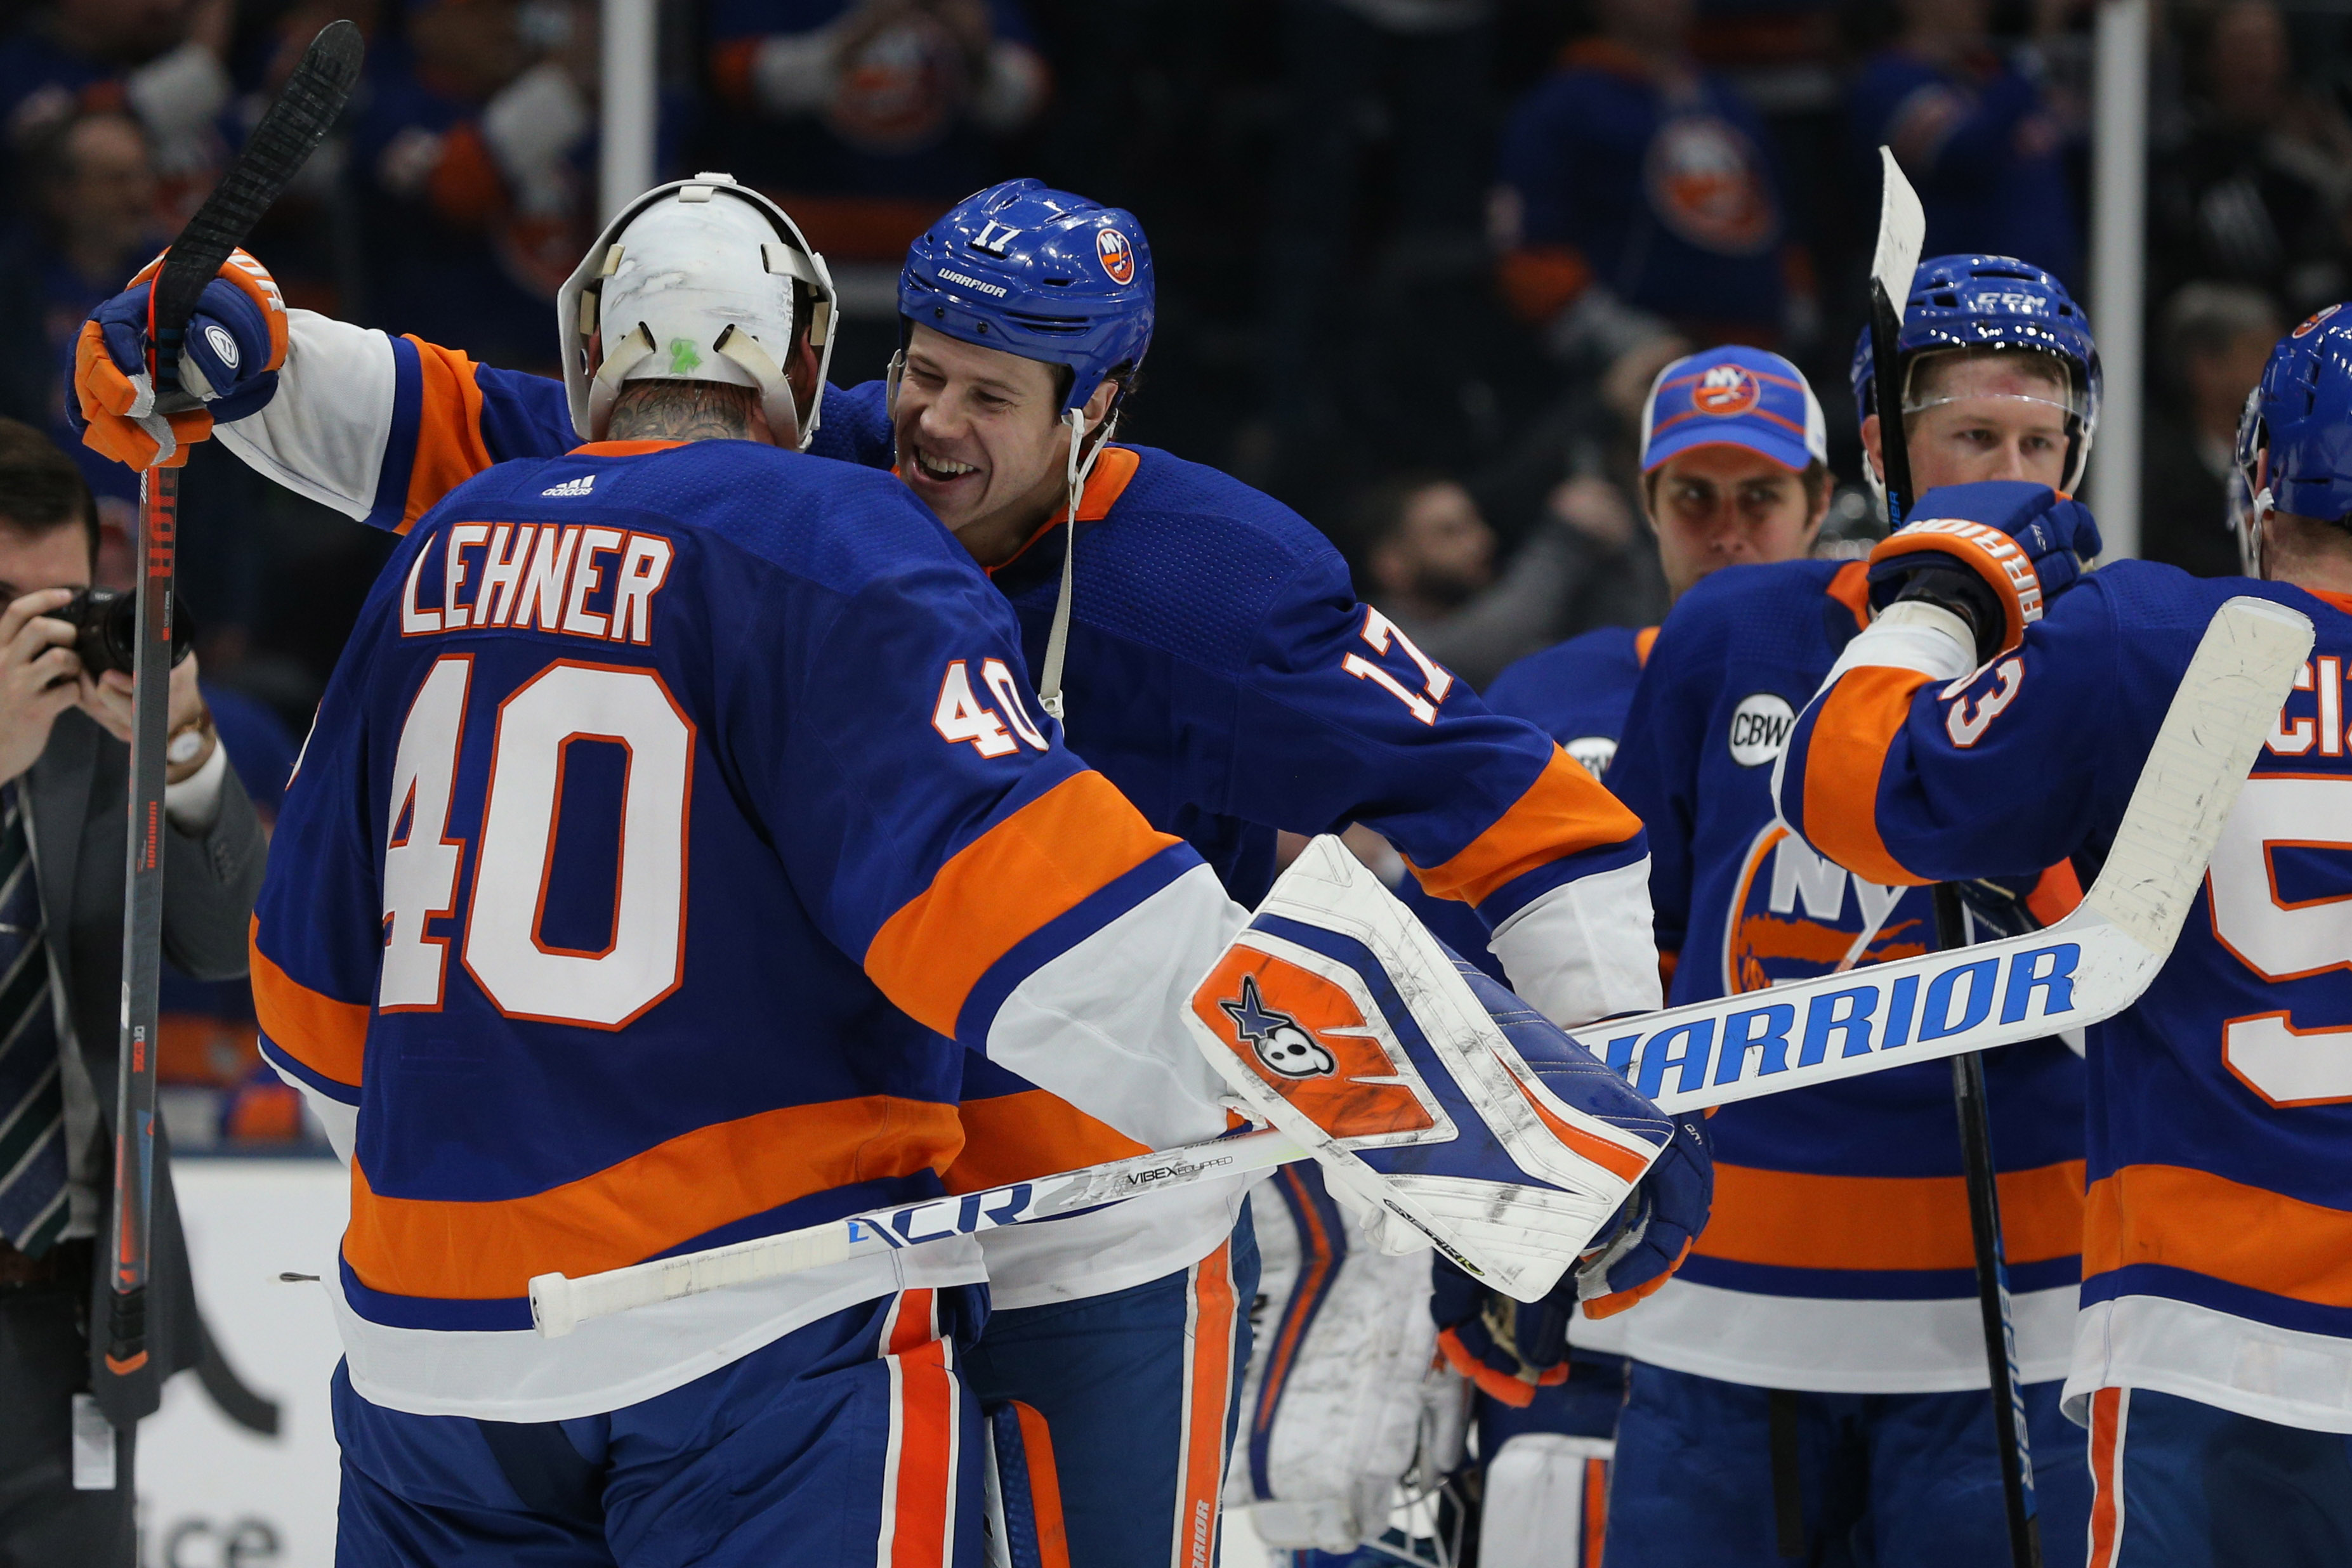 Feb 28, 2019; Brooklyn, NY, USA; New York Islanders left wing Matt Martin (17) celebrates with New York Islanders goalie Robin Lehner (40) after defeating the Toronto Maple Leafs at the Nassau Veterans Memorial Coliseum. Mandatory Credit: Brad Penner-USA TODAY Sports